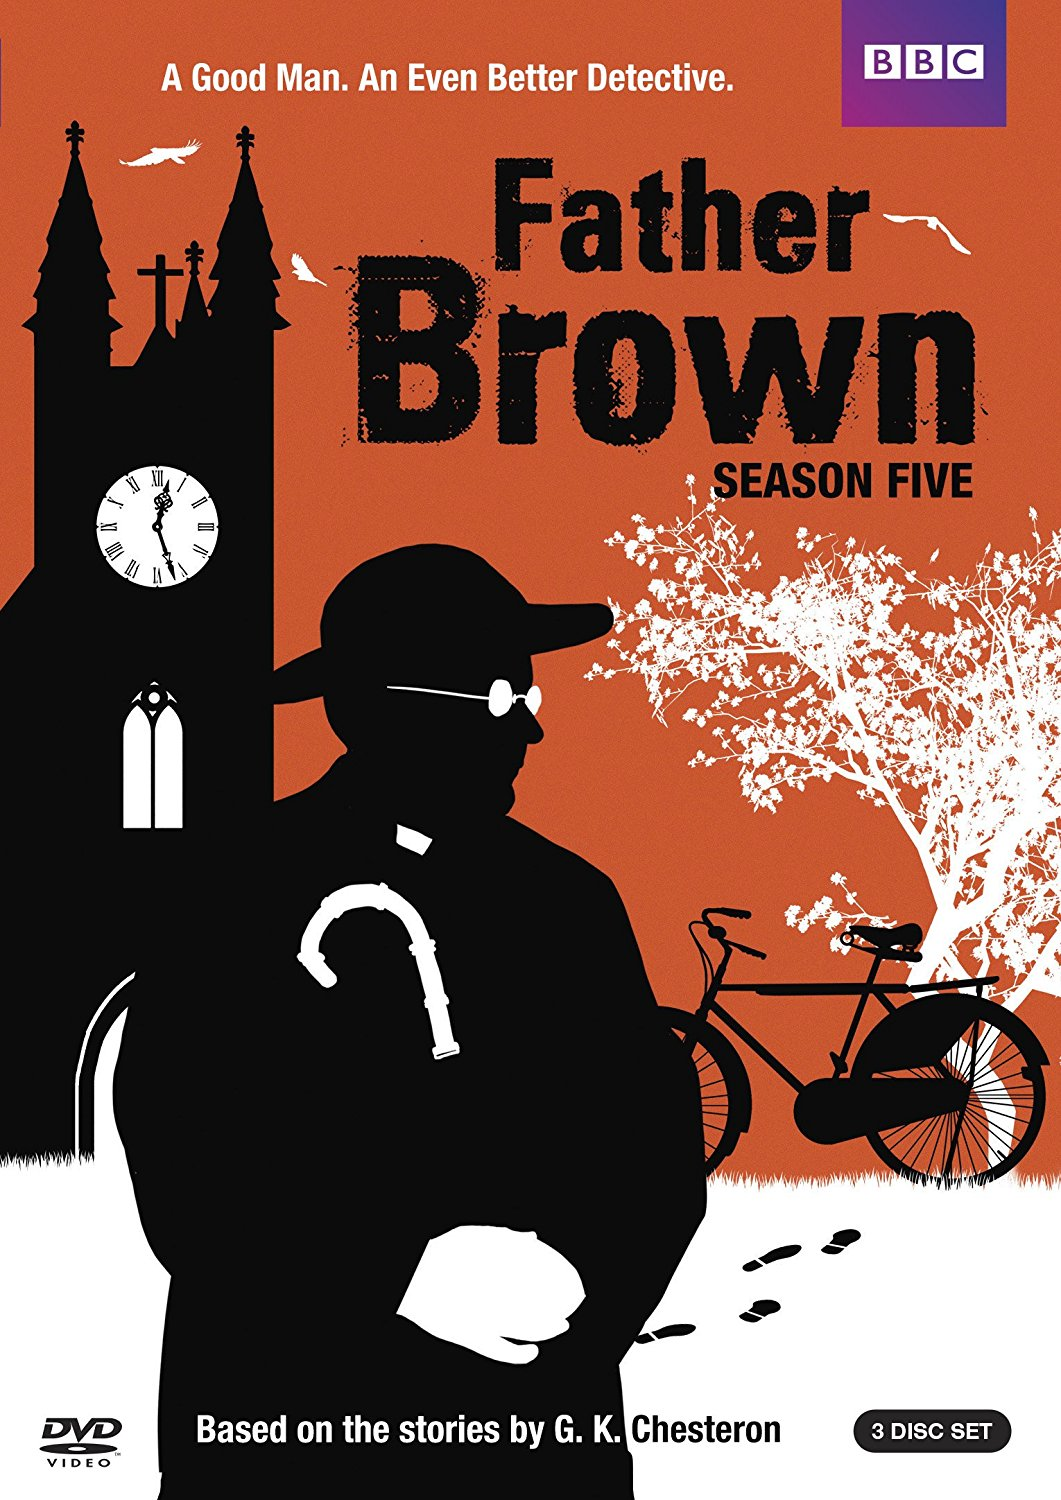 Father Brown: Season 5 dvd cover